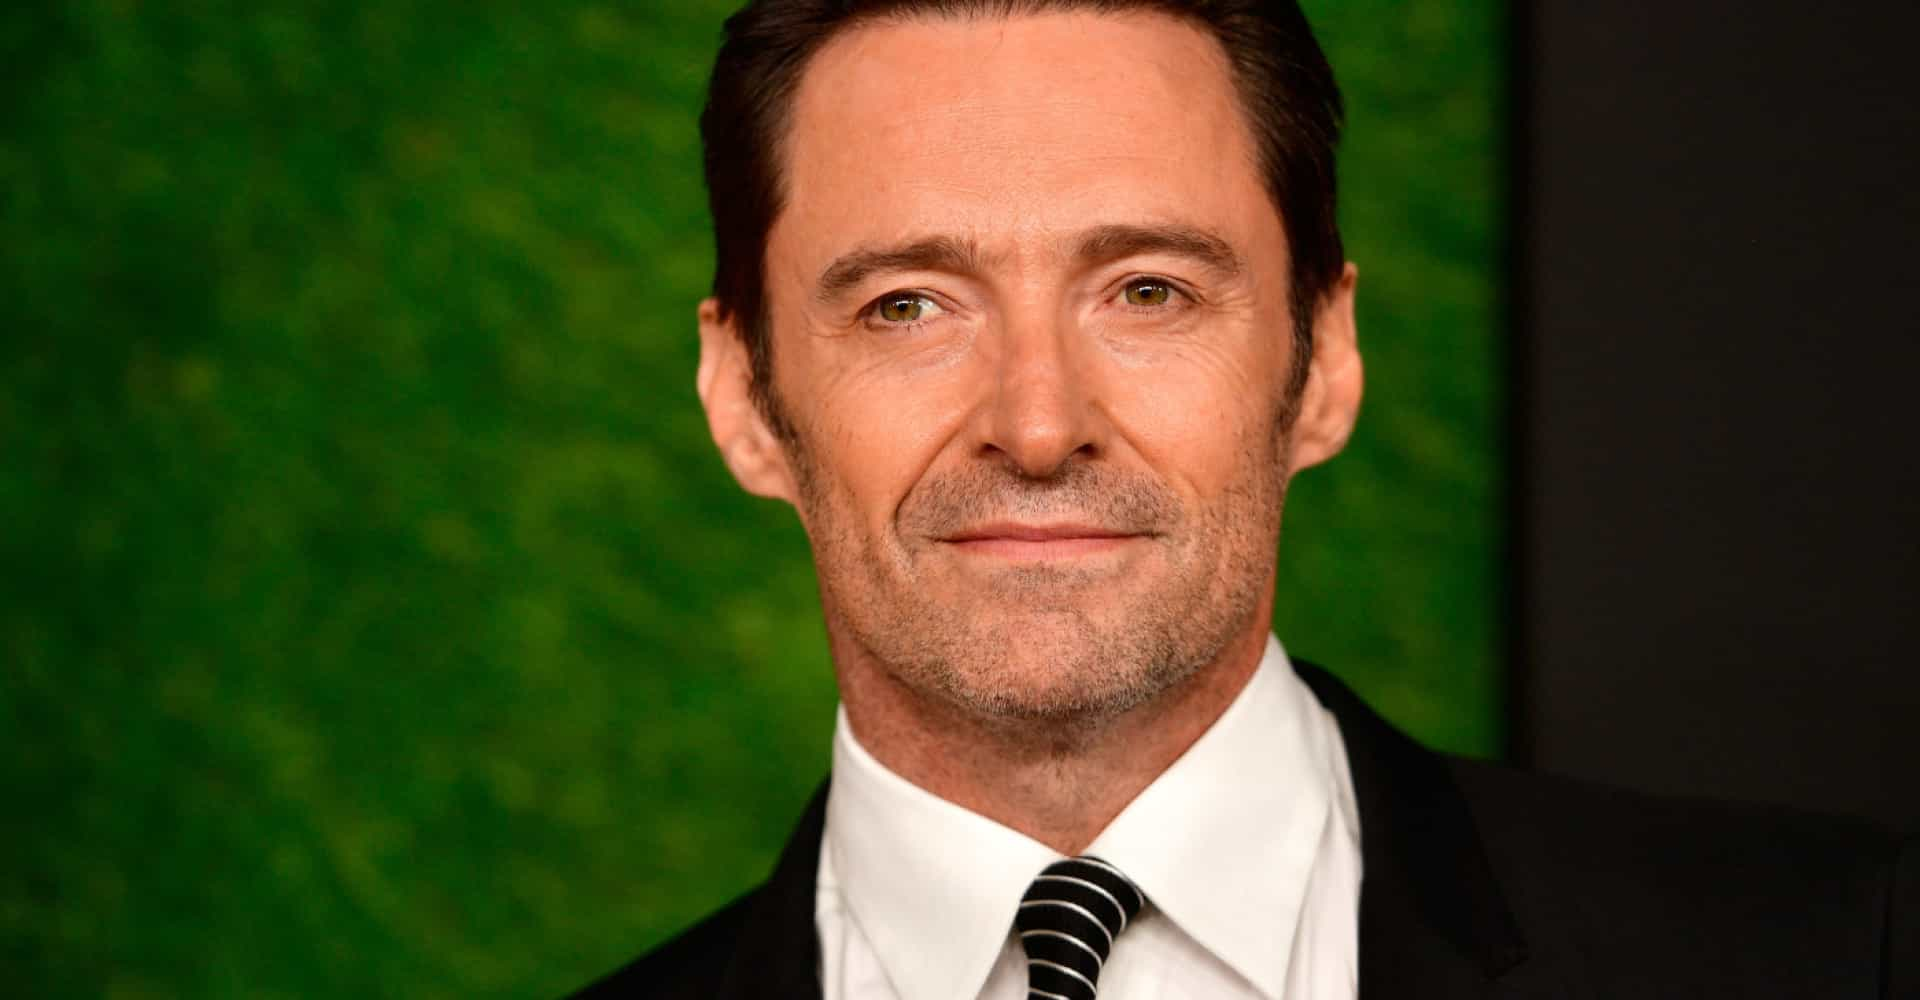 The greatest showman: Why Hugh Jackman is the nicest man in Hollywood